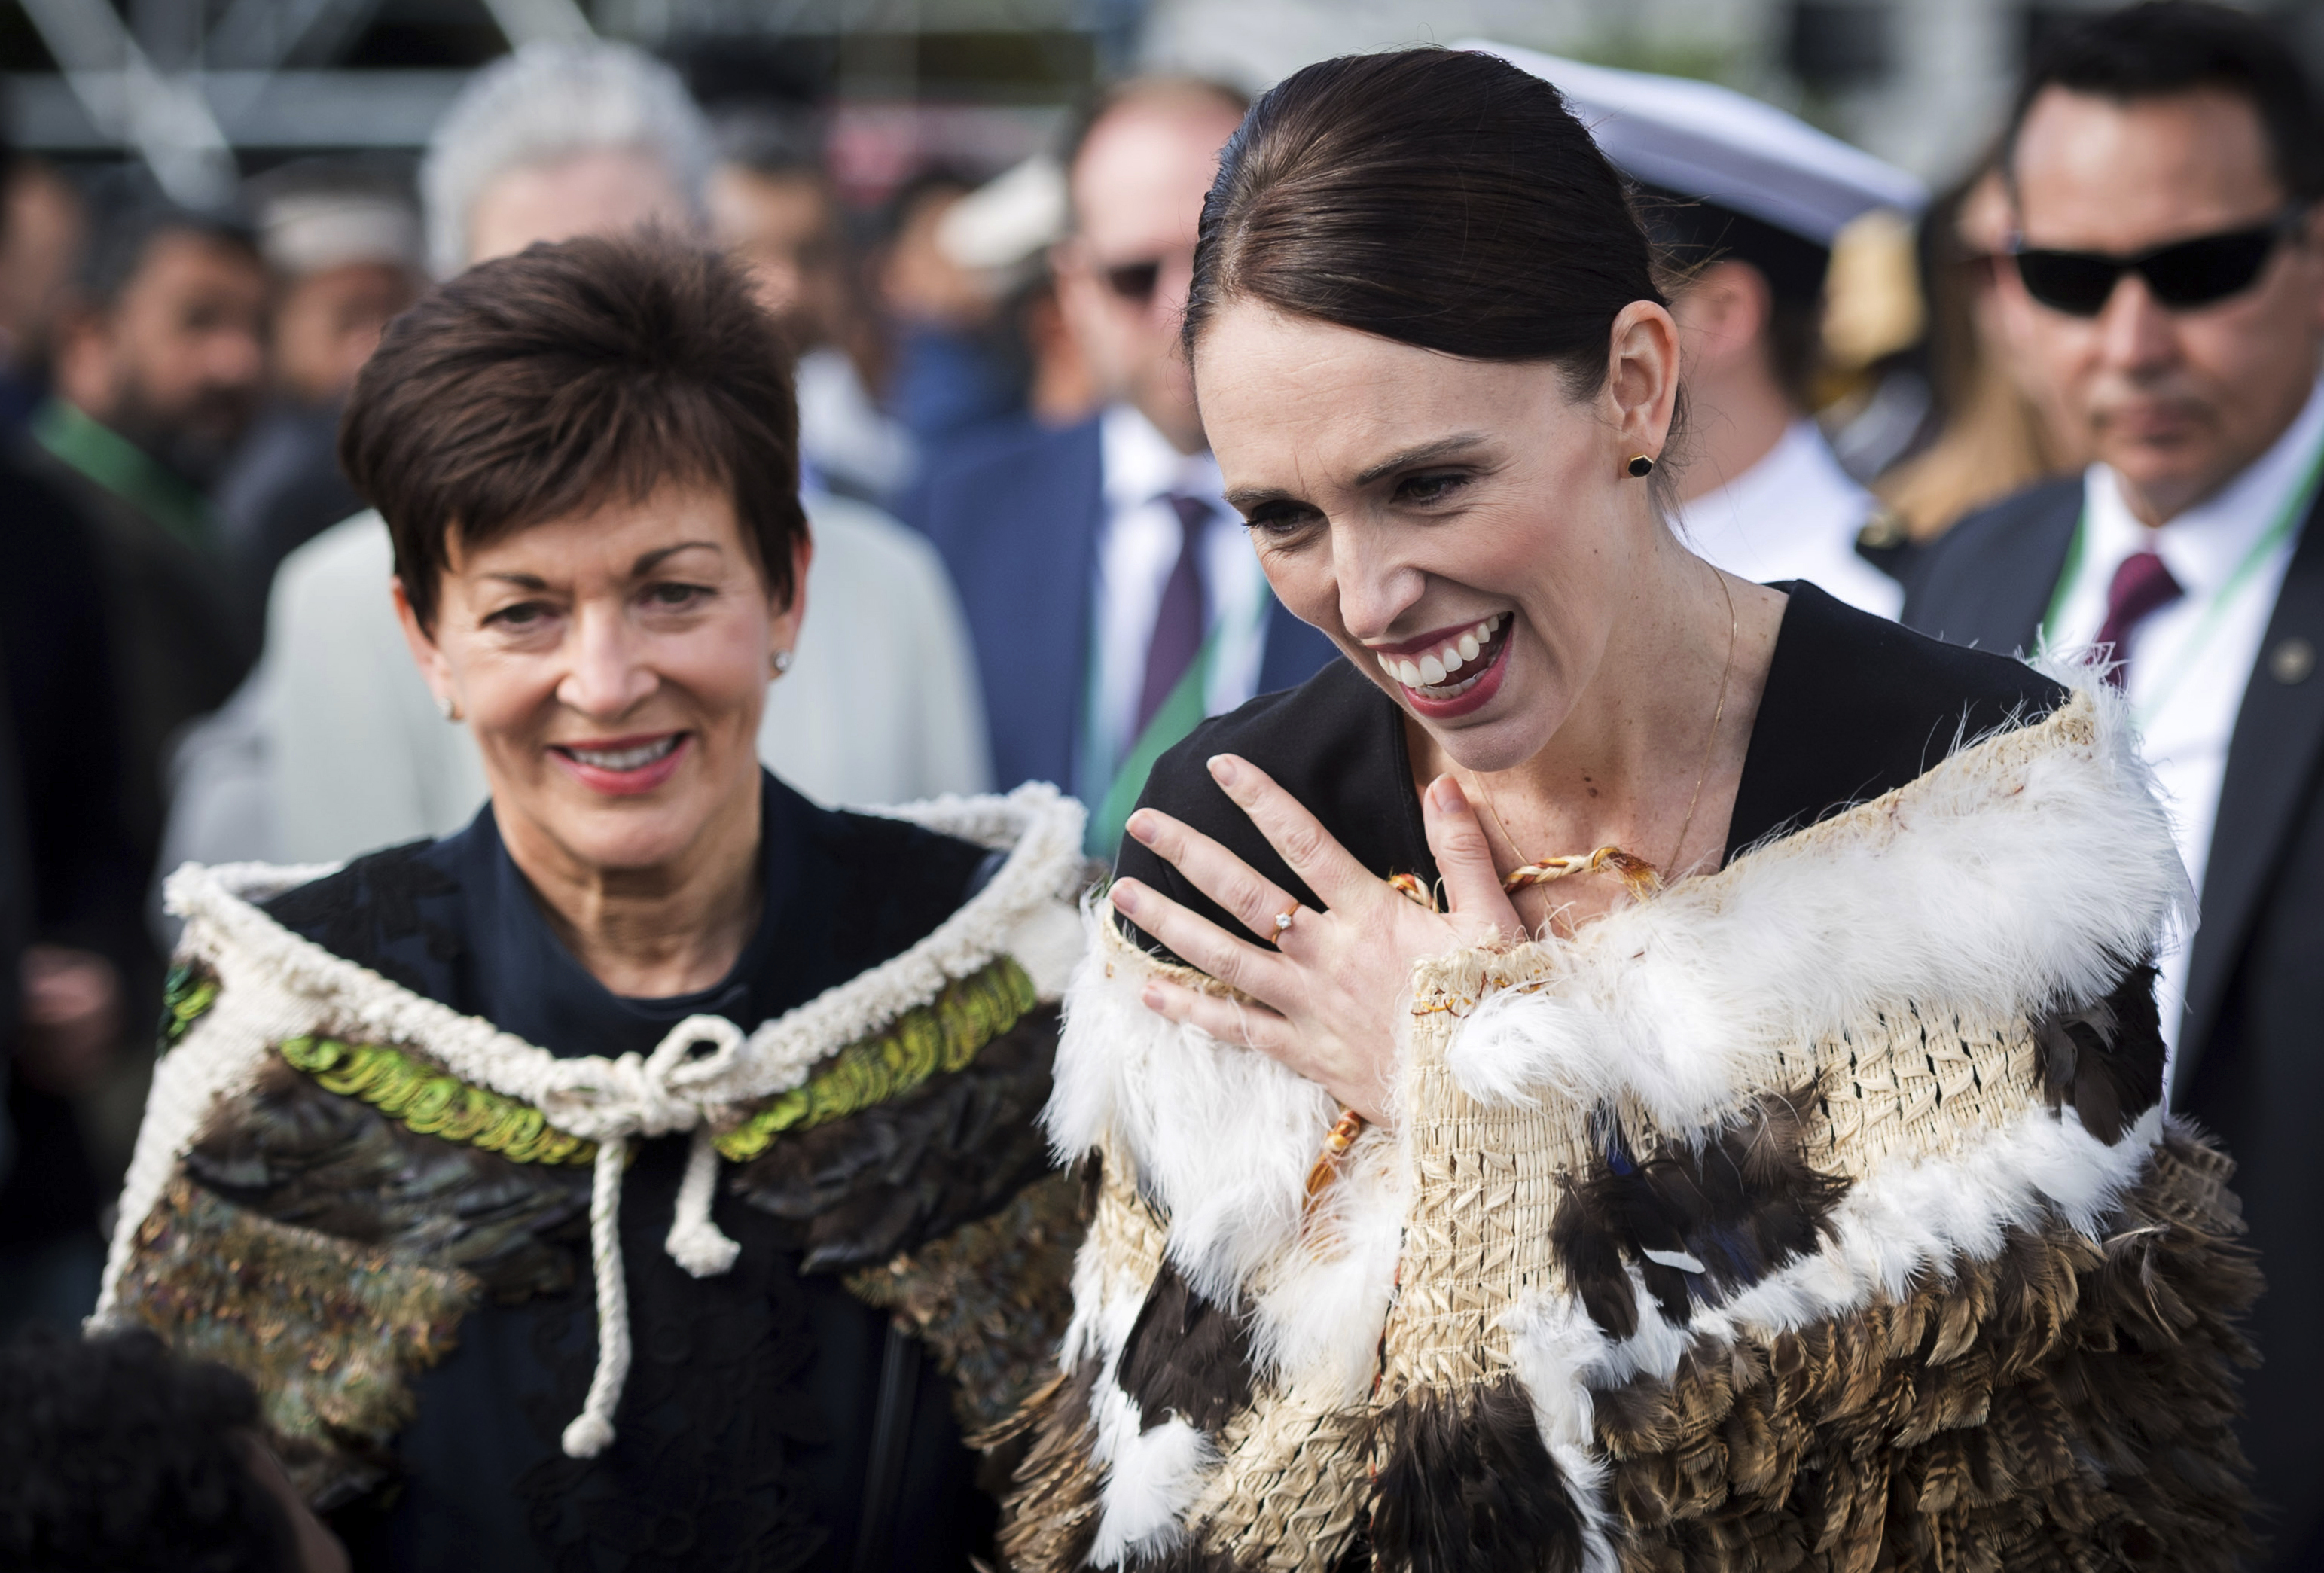 In this image supplied by the New Zealand government, New Zealand Prime Minister Jacinda Ardern, right, reacts as she meets members of the Muslim community following the national remembrance service for the victims of the March 15 mosques terrorist attack at Hagley Park in Christchurch, New Zealand, Friday, March 29, 2019. (Mark Tantrum via AP)